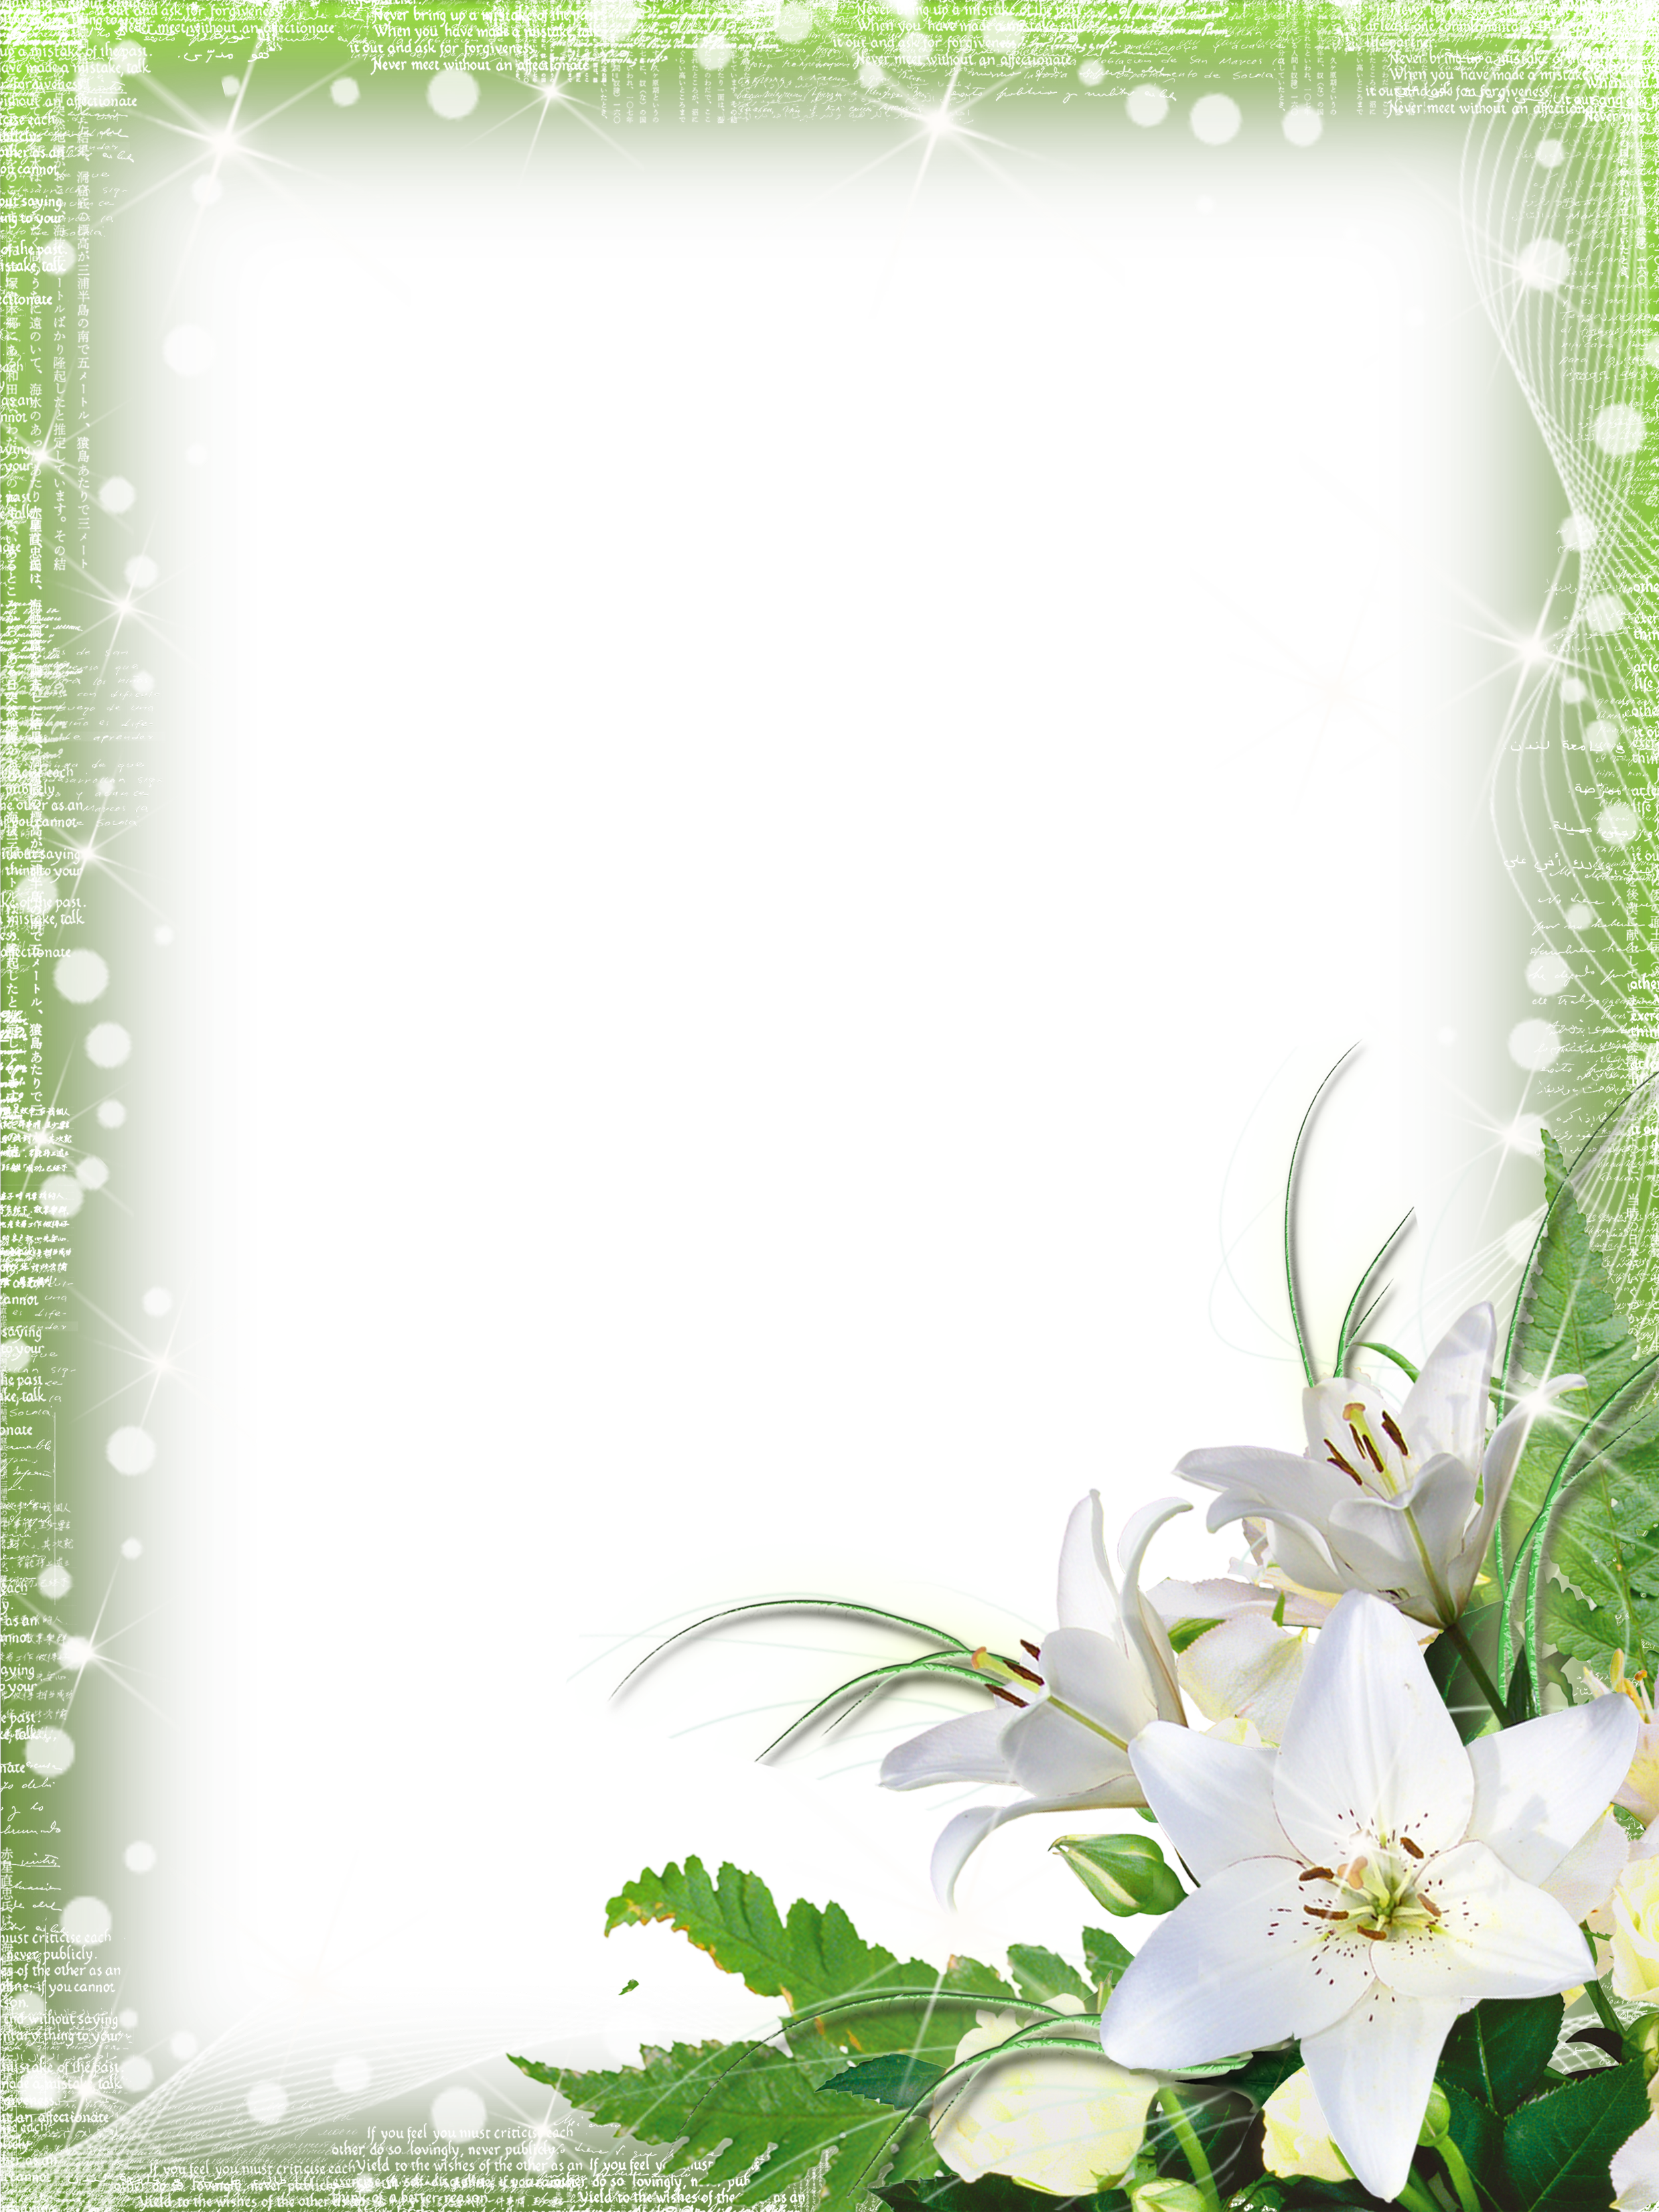 Png photo frames. Green frame with flowers